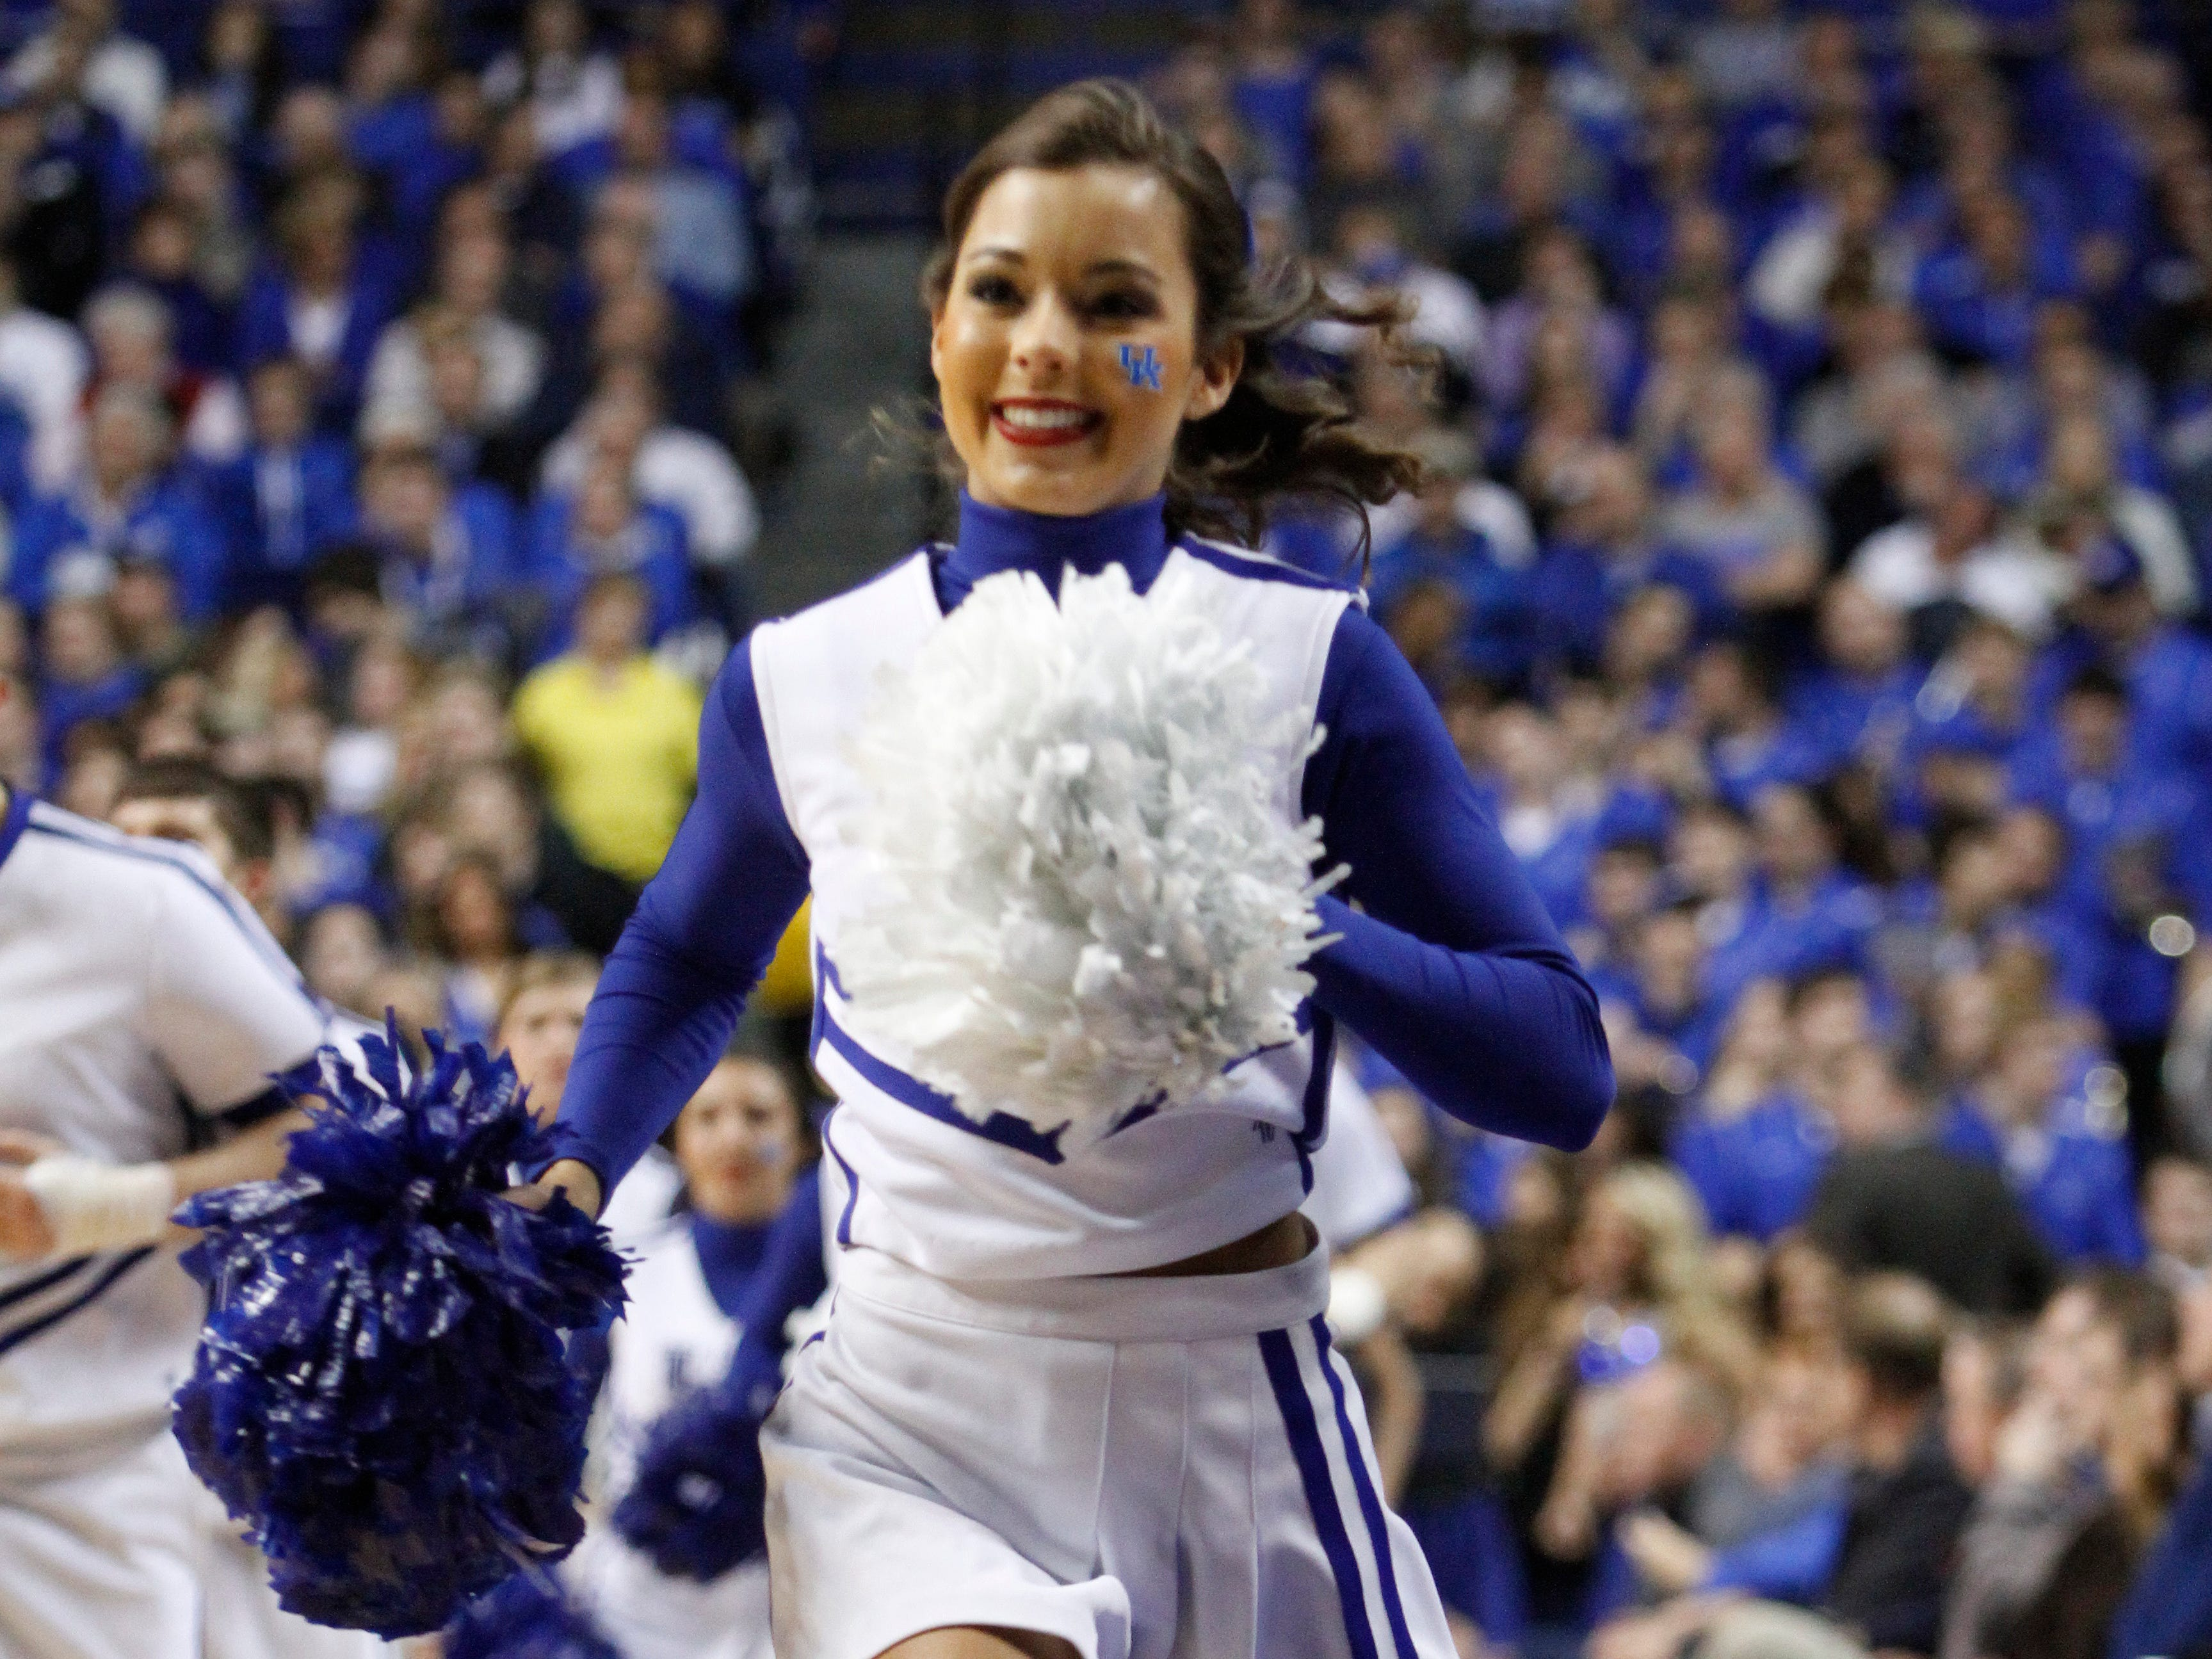 Kentucky cheerleaders perform during the second half of an NCAA college basketball game, Tuesday, March 4, 2014, in Lexington, Ky. Kentucky won 55-48. (AP Photo/James Crisp)